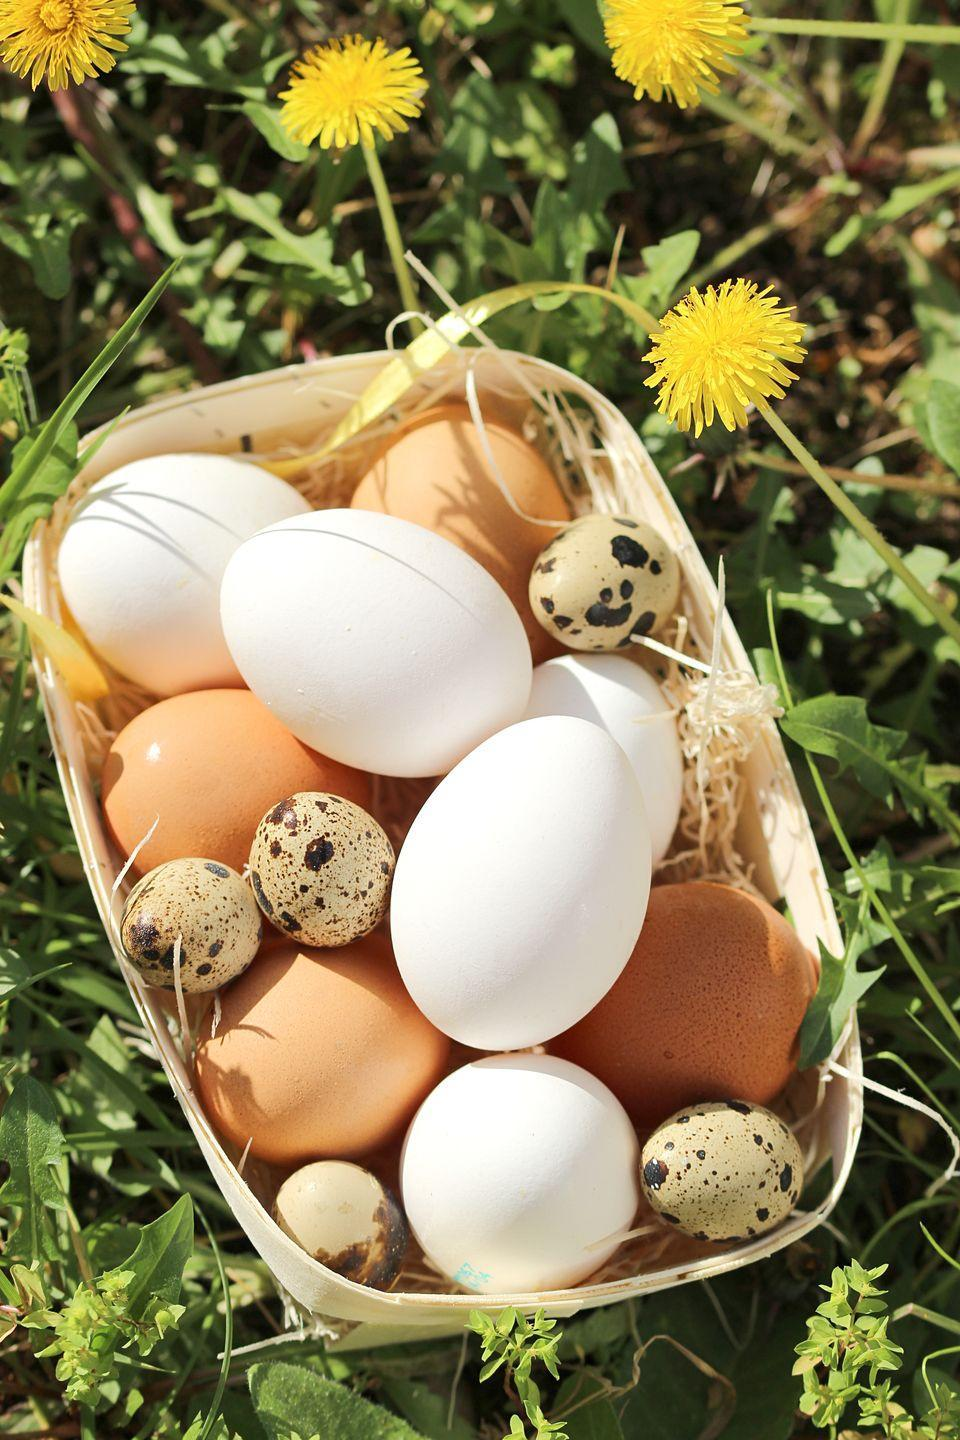 """<p>Ireland celebrates Good Friday in a more optimistic way, spending the day looking out for specific signs. It's also believed that <a href=""""http://projectbritain.com/easter/superstitions.htm"""" rel=""""nofollow noopener"""" target=""""_blank"""" data-ylk=""""slk:eggs laid on this day"""" class=""""link rapid-noclick-resp"""">eggs laid on this day</a> will never rot. Some people even hold onto eggs for decades just to prove the myth.<strong><br></strong></p><p><strong>RELATED:</strong> <a href=""""https://www.goodhousekeeping.com/holidays/easter-ideas/g419/easter-egg-decorating-ideas/"""" rel=""""nofollow noopener"""" target=""""_blank"""" data-ylk=""""slk:80+ So-Adorable Easter Egg Decorating Ideas"""" class=""""link rapid-noclick-resp"""">80+ So-Adorable Easter Egg Decorating Ideas</a></p>"""